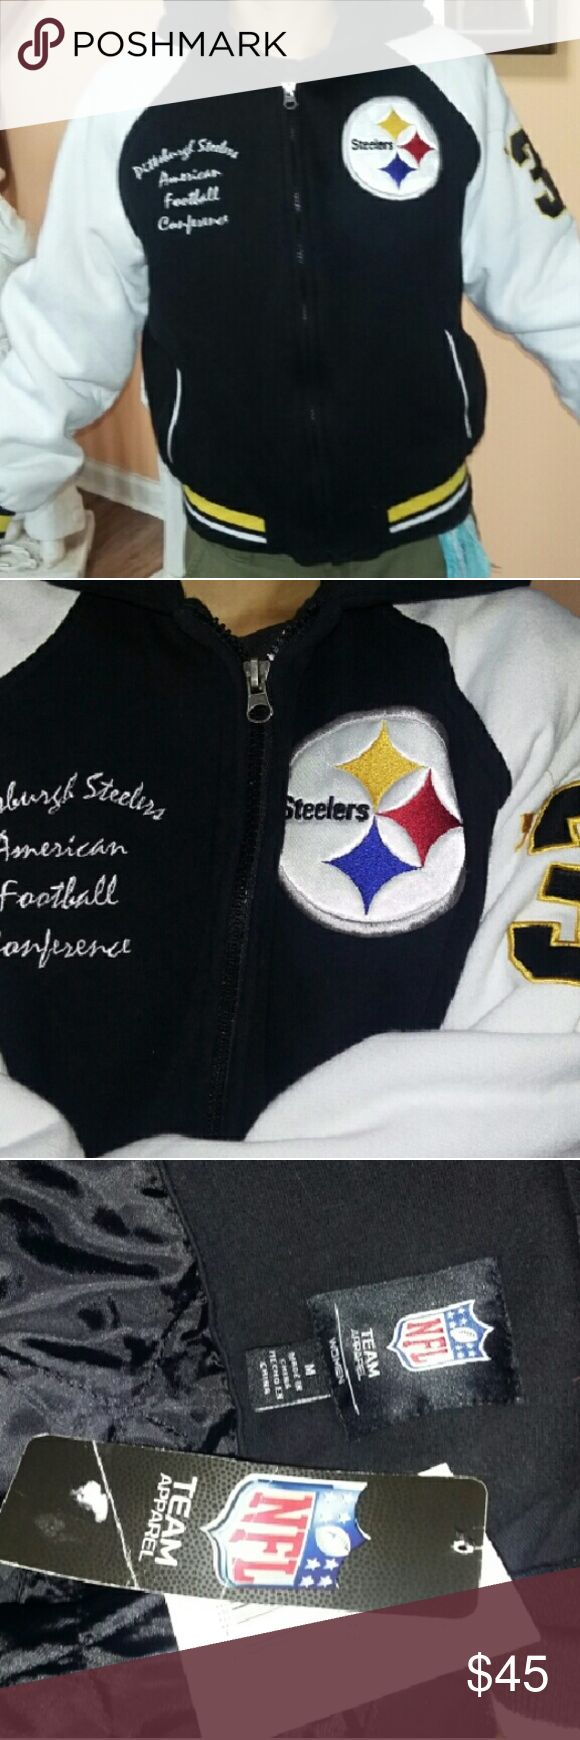 Pittsburgh Steelers Jacket  SZ M This jacket is gorgeous...sweatshirt material with a nice quilted lining....the hood unzips to lay flat to show off the team logo... ..numbers on the sleeves and embroidered on the front.. Pittsburgh Steelers  American Football  Conference. NFL  Officially liscensed product. Jackets & Coats